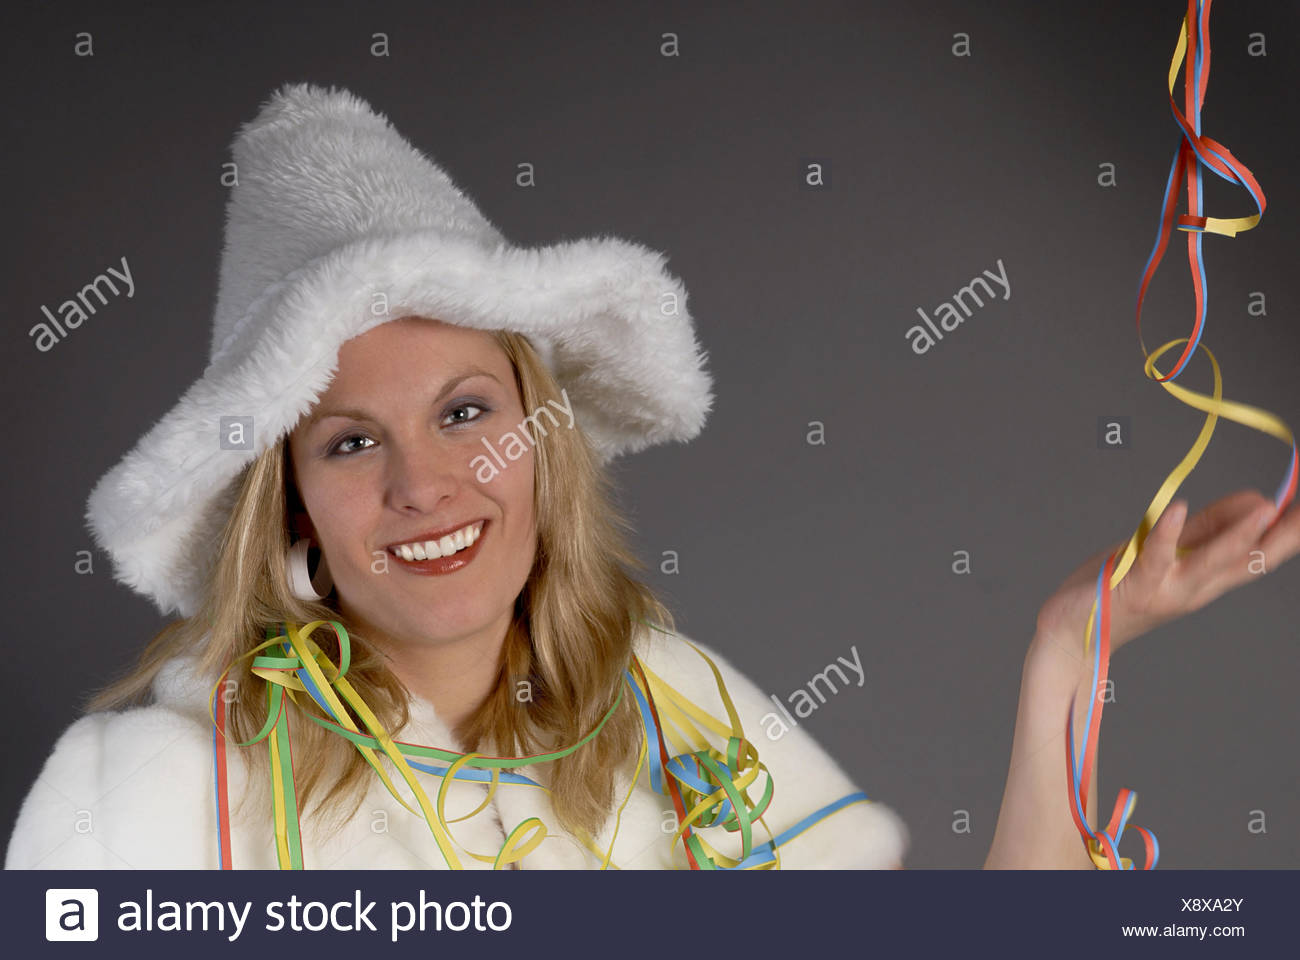 Carnival disguise - Stock Image